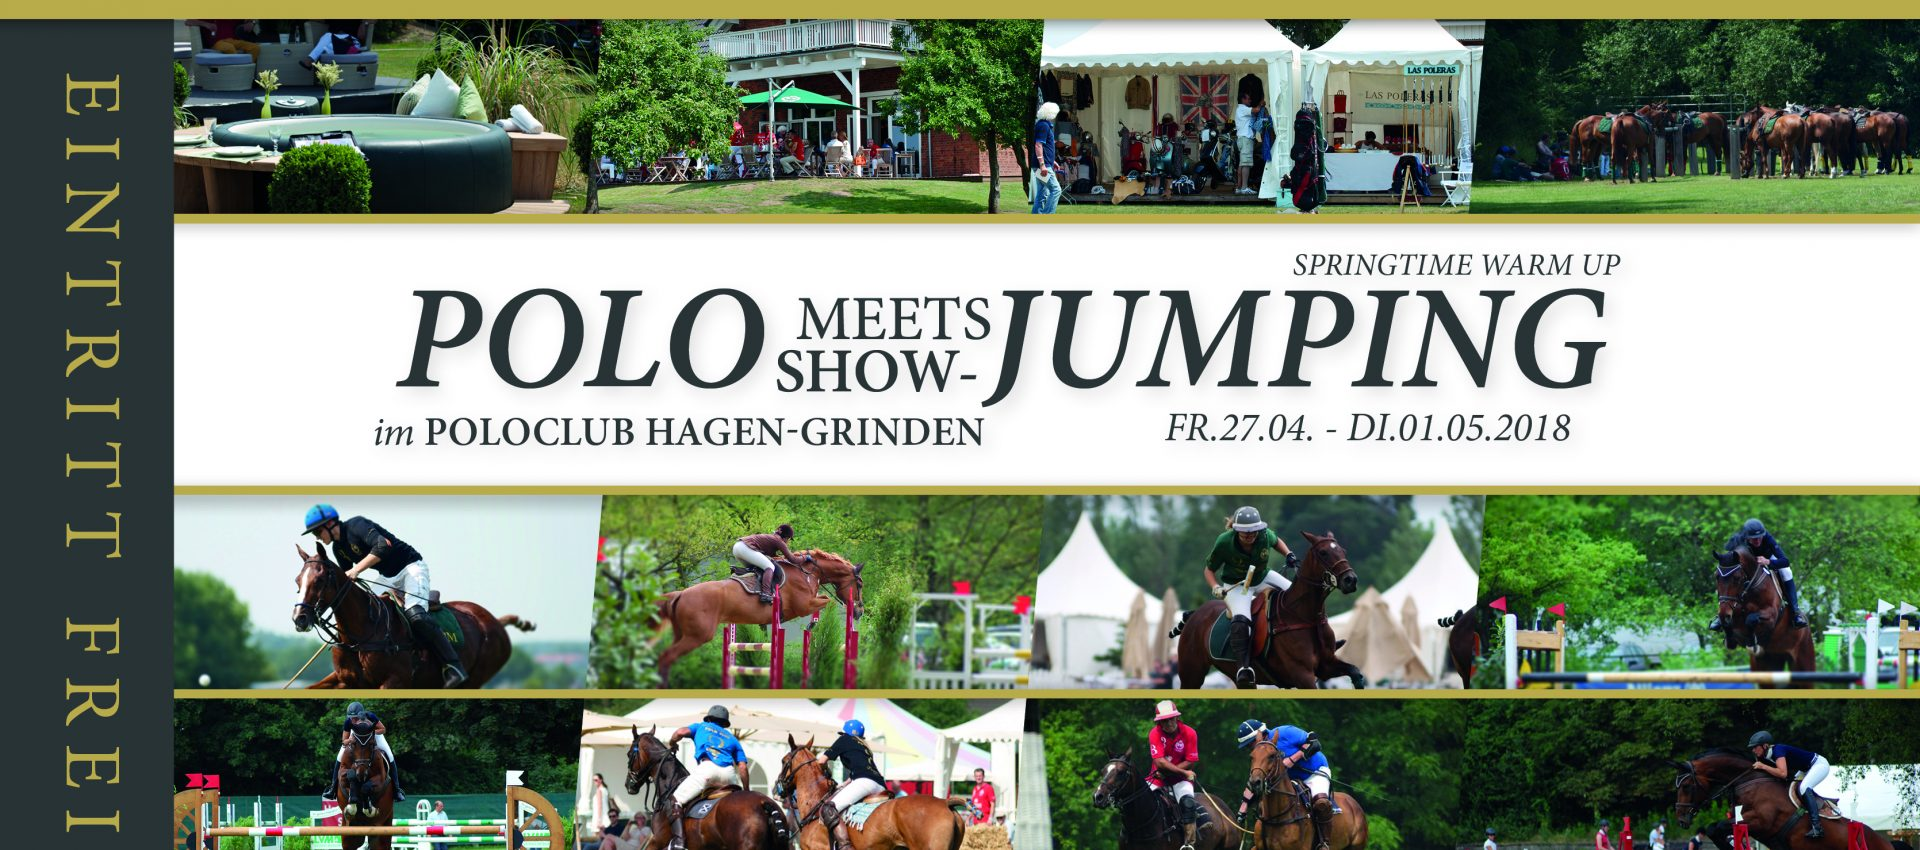 Polo meets Showjumping